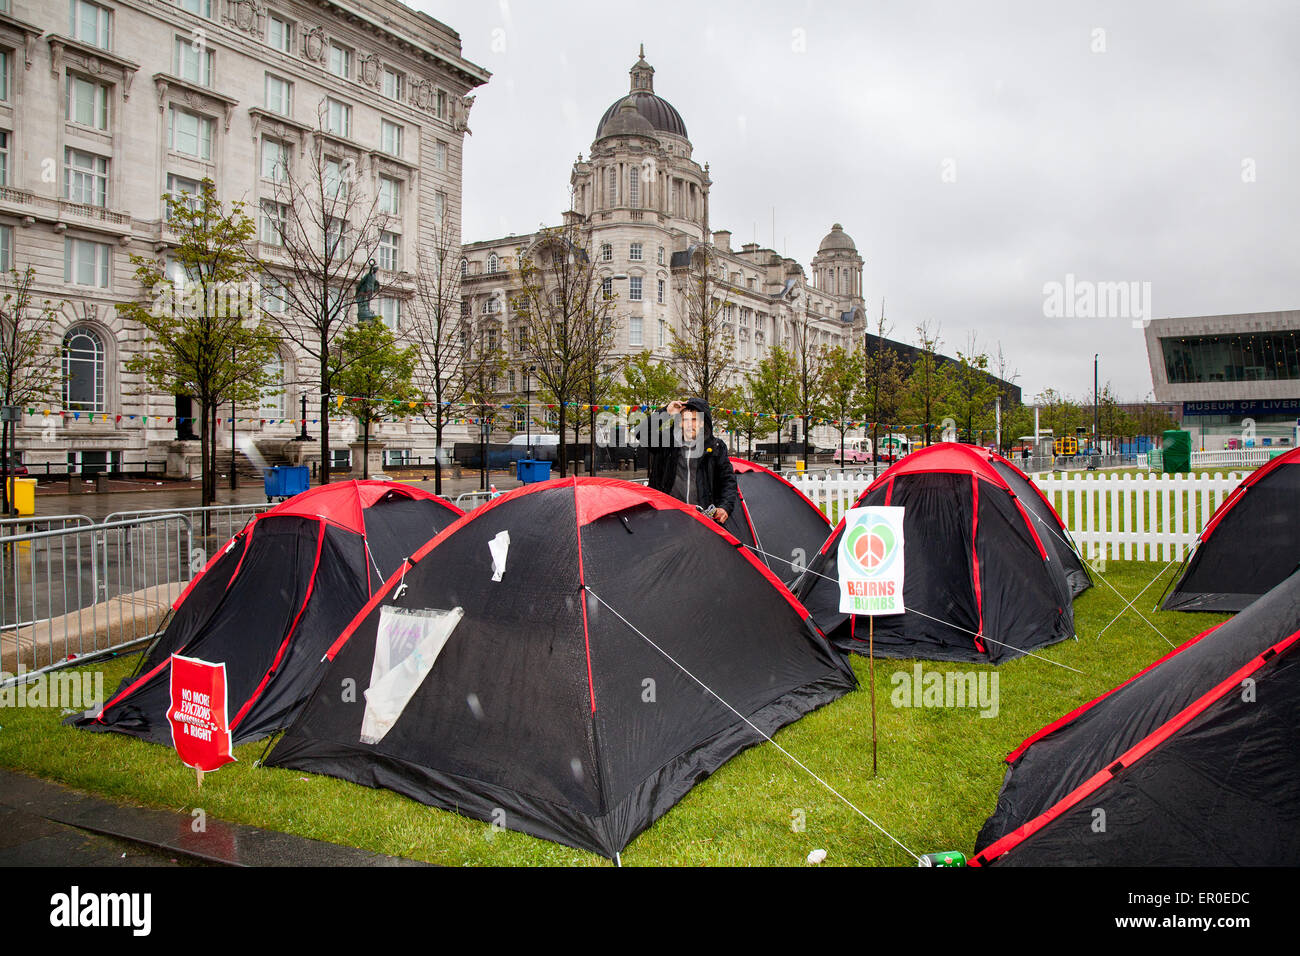 Liverpool Merseyside UK 24th May 2015. The Love Activists for the homeless & Liverpool Merseyside UK 24th May 2015. The Love Activists for ...